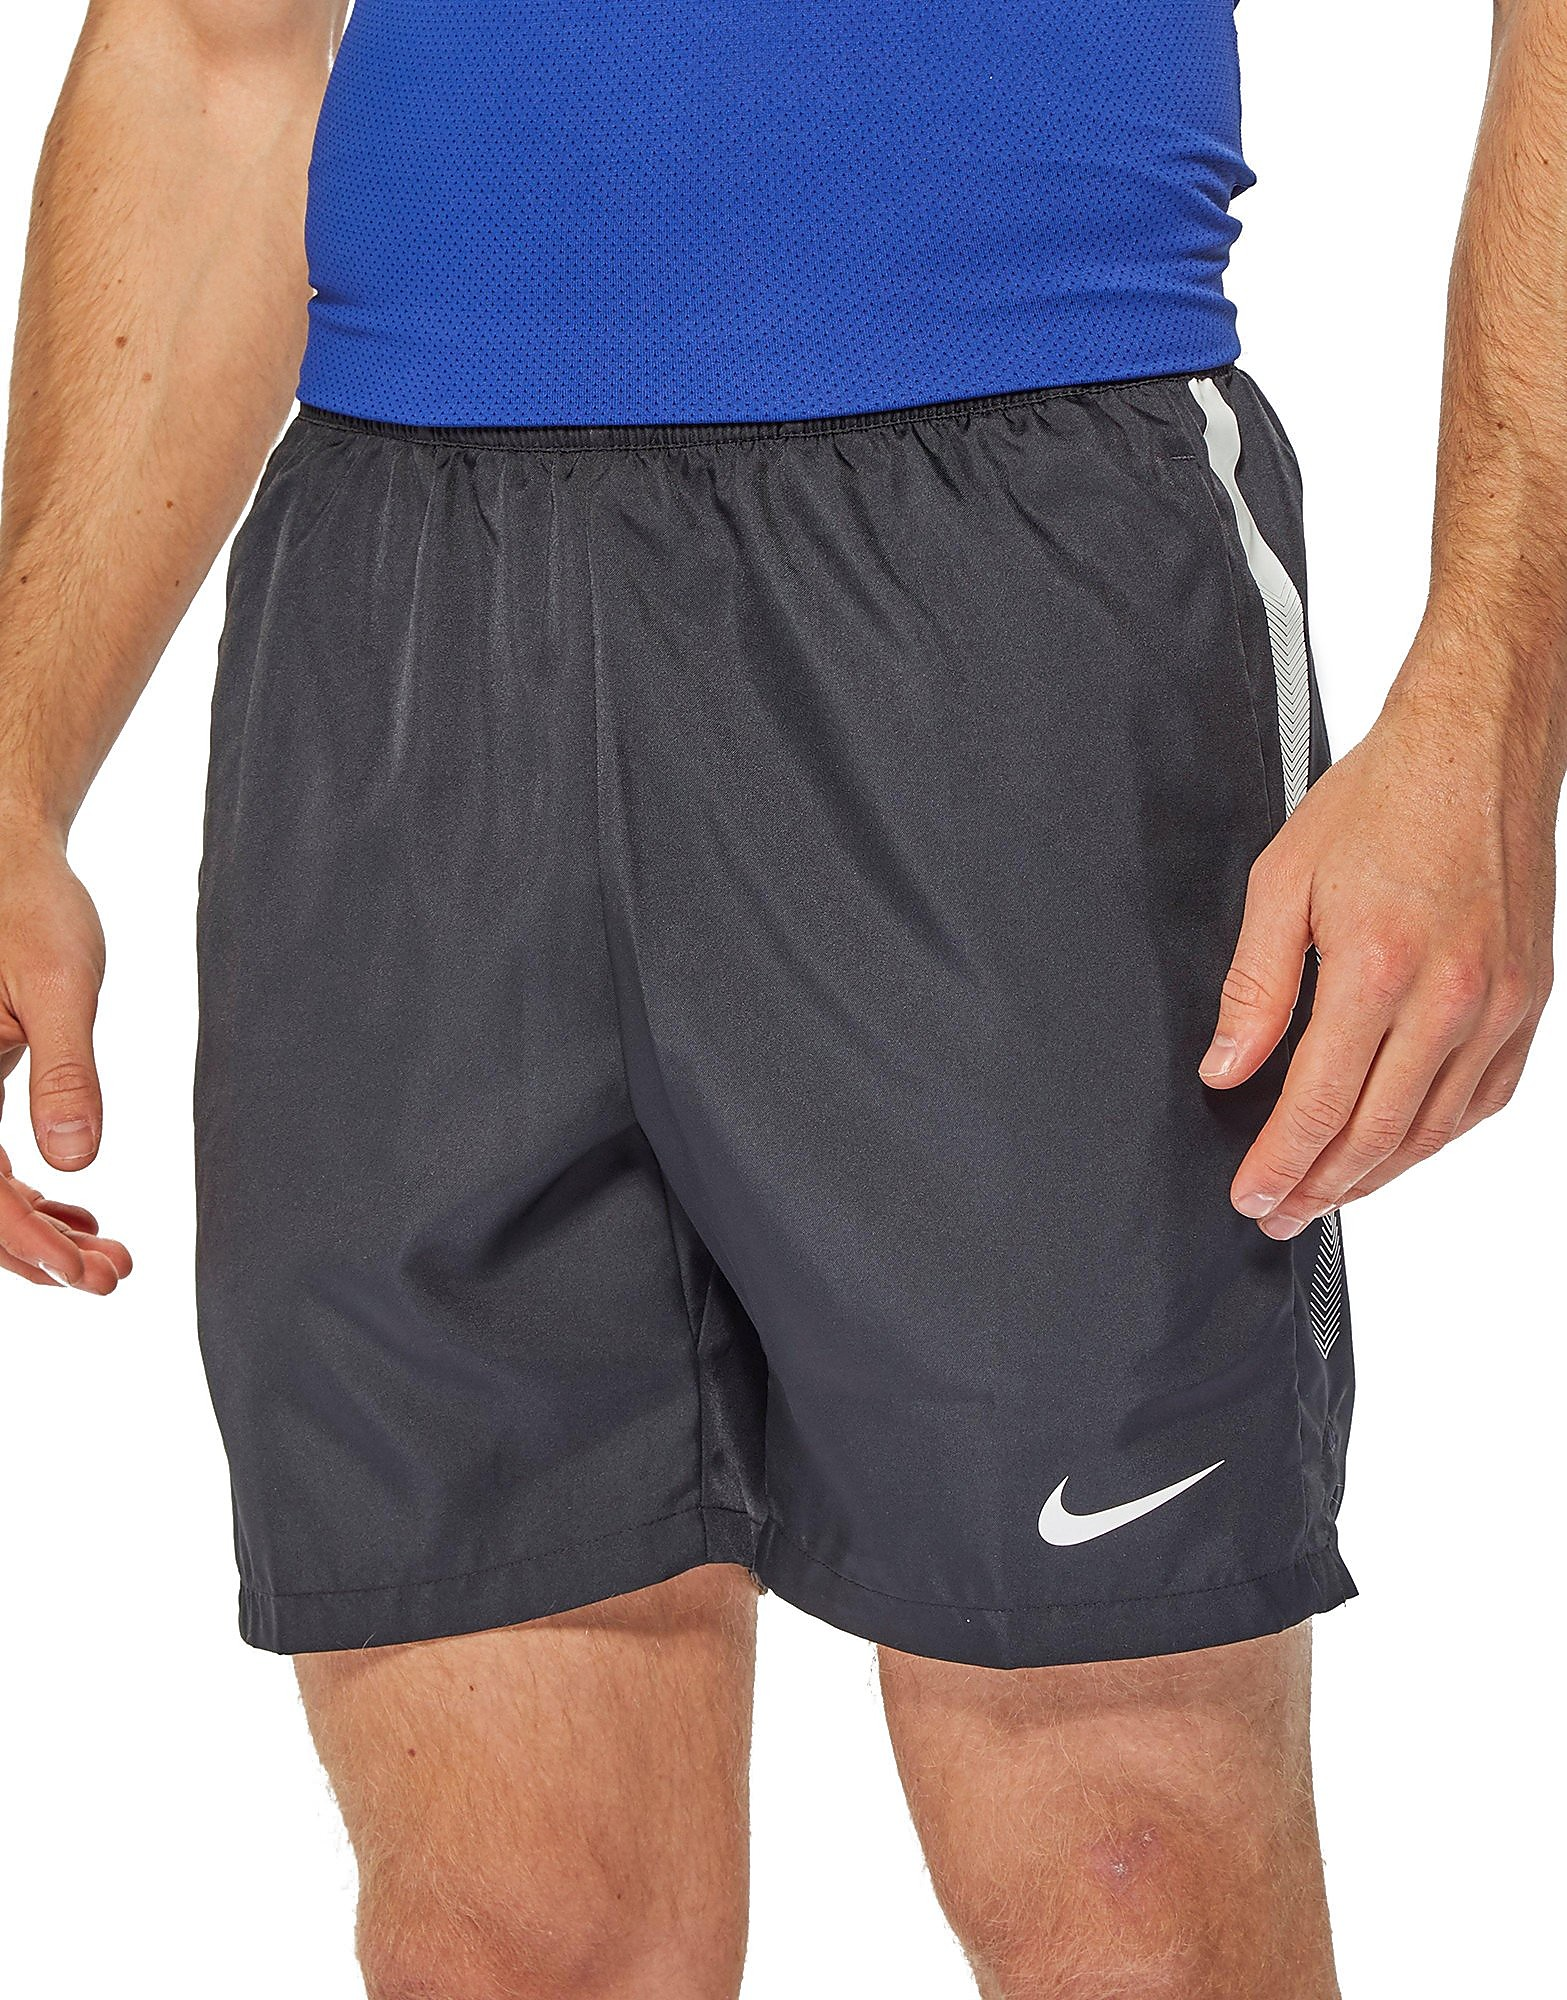 "Nike Court Dry Men's 7"" Tennis Shorts"